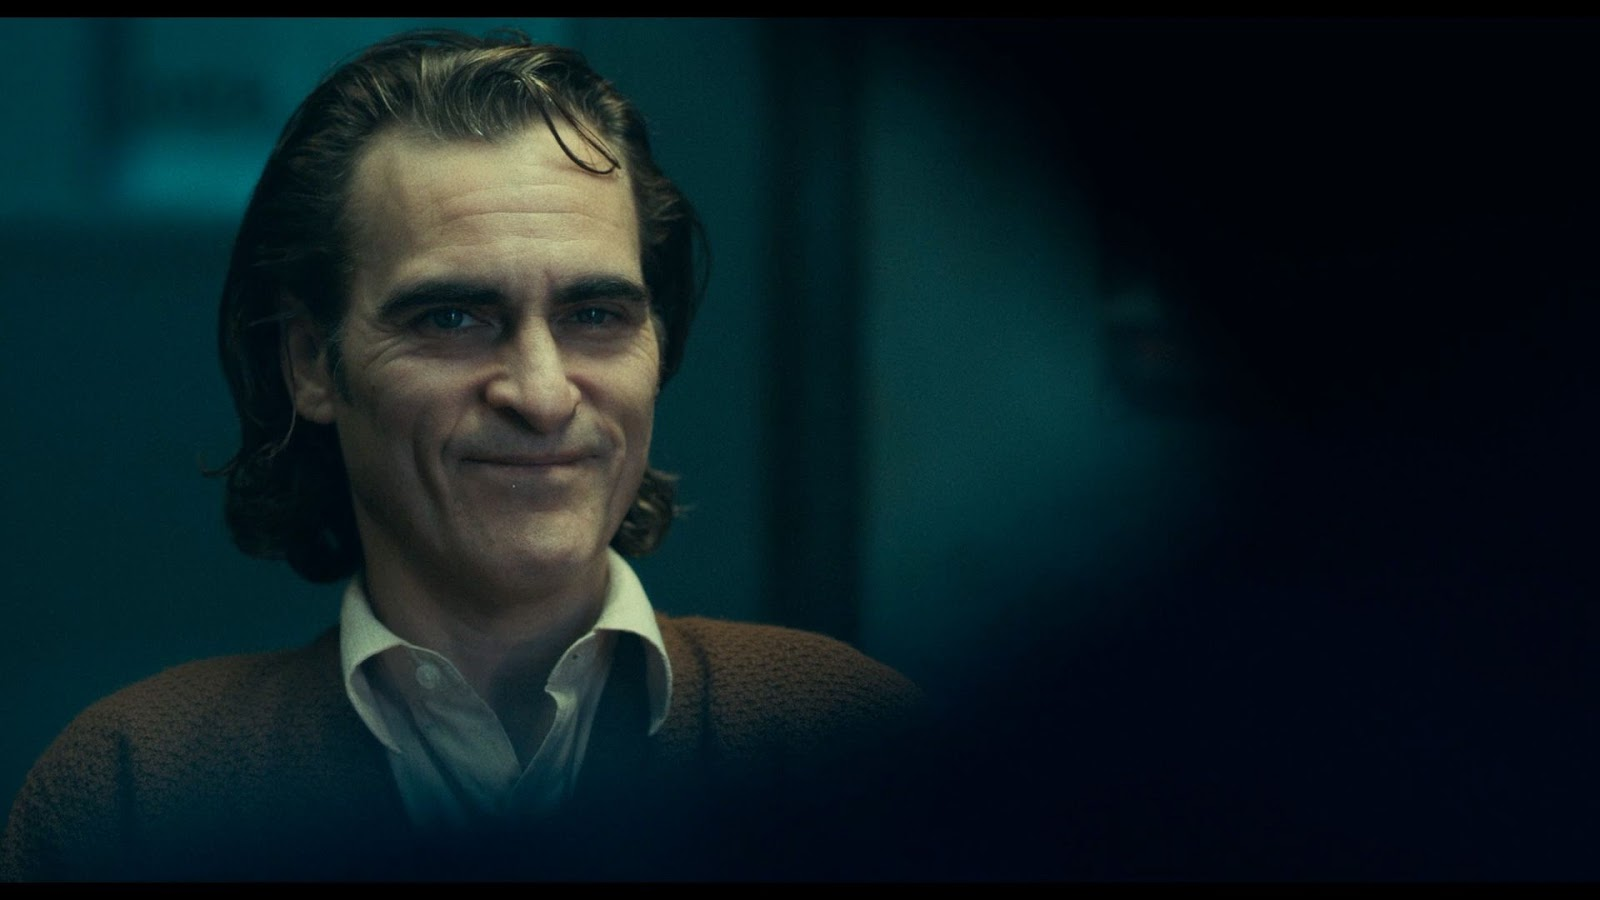 joaquin-phoenix-joker-wallpaper